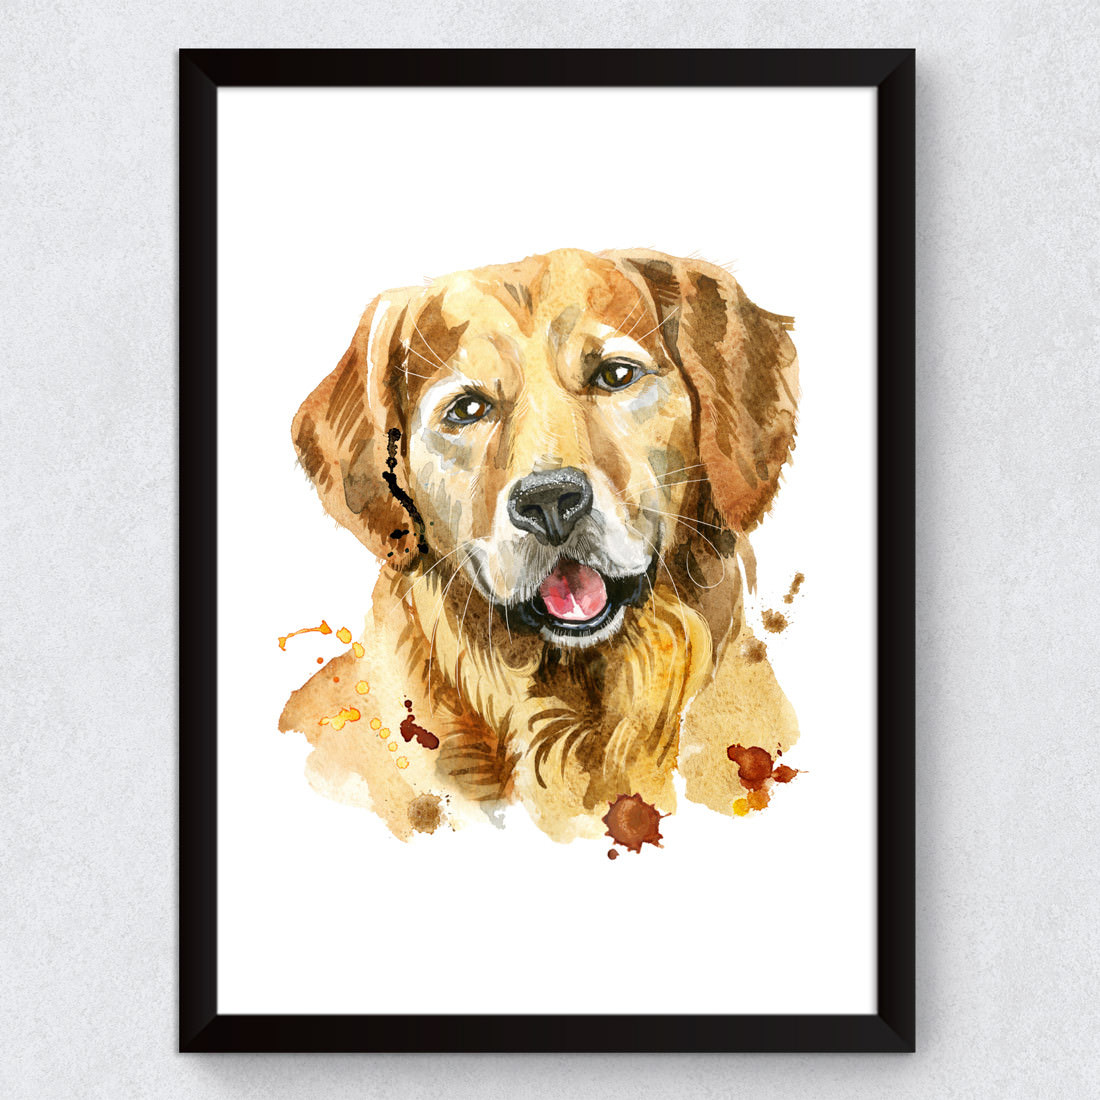 Quadro Decorativo Cachorro Golden Retriever Aquarela